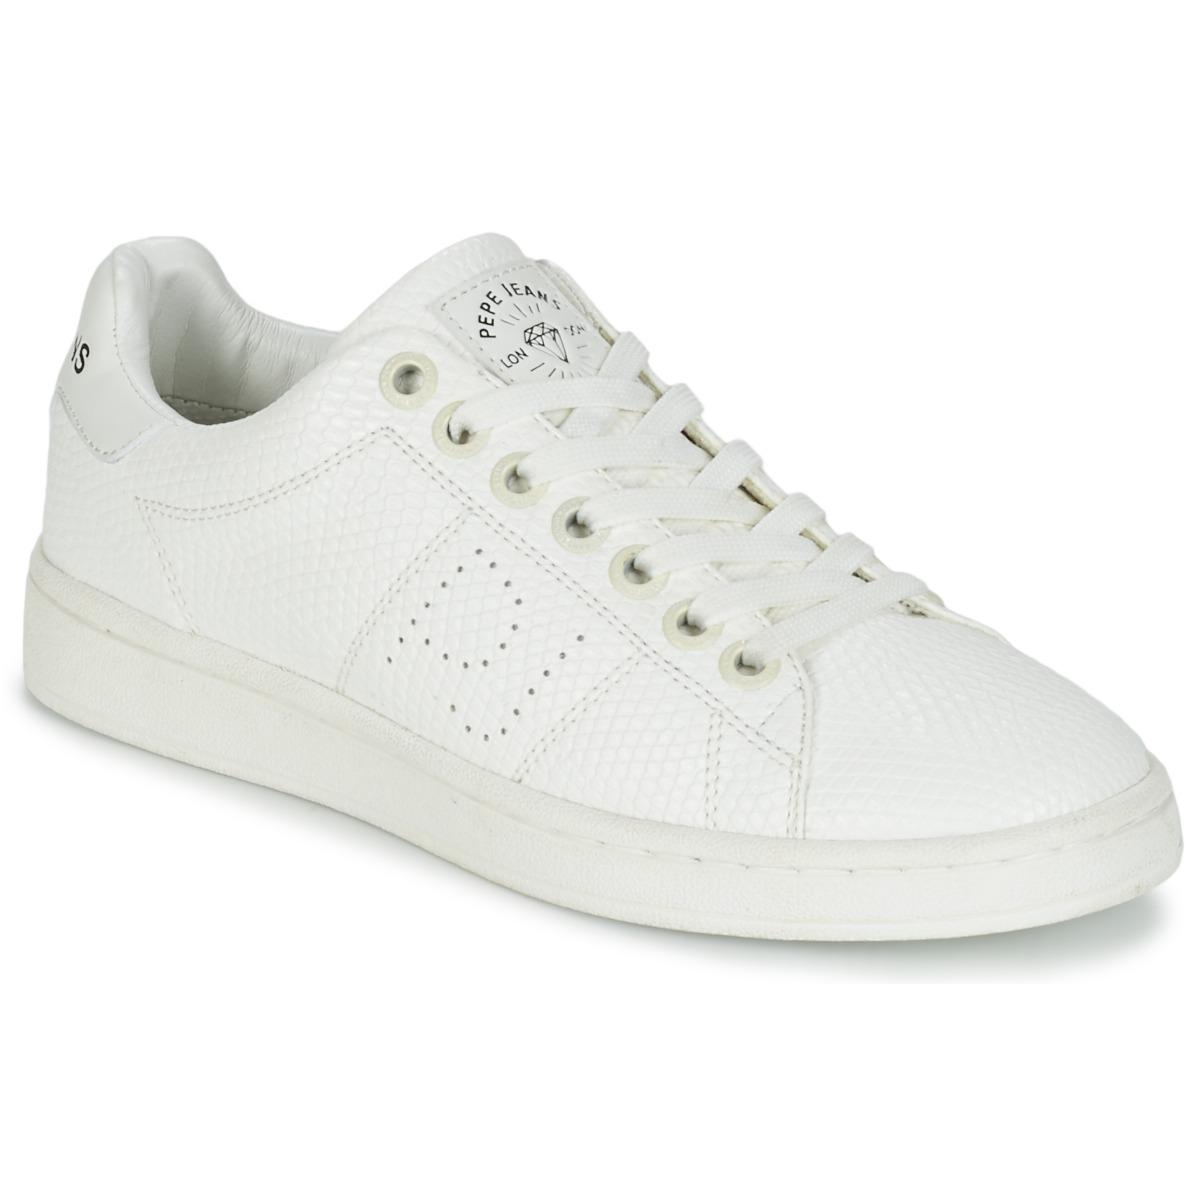 Pepe Jeans New Club Monocrome Shoes (trainers) in White - Lyst 661efebb52